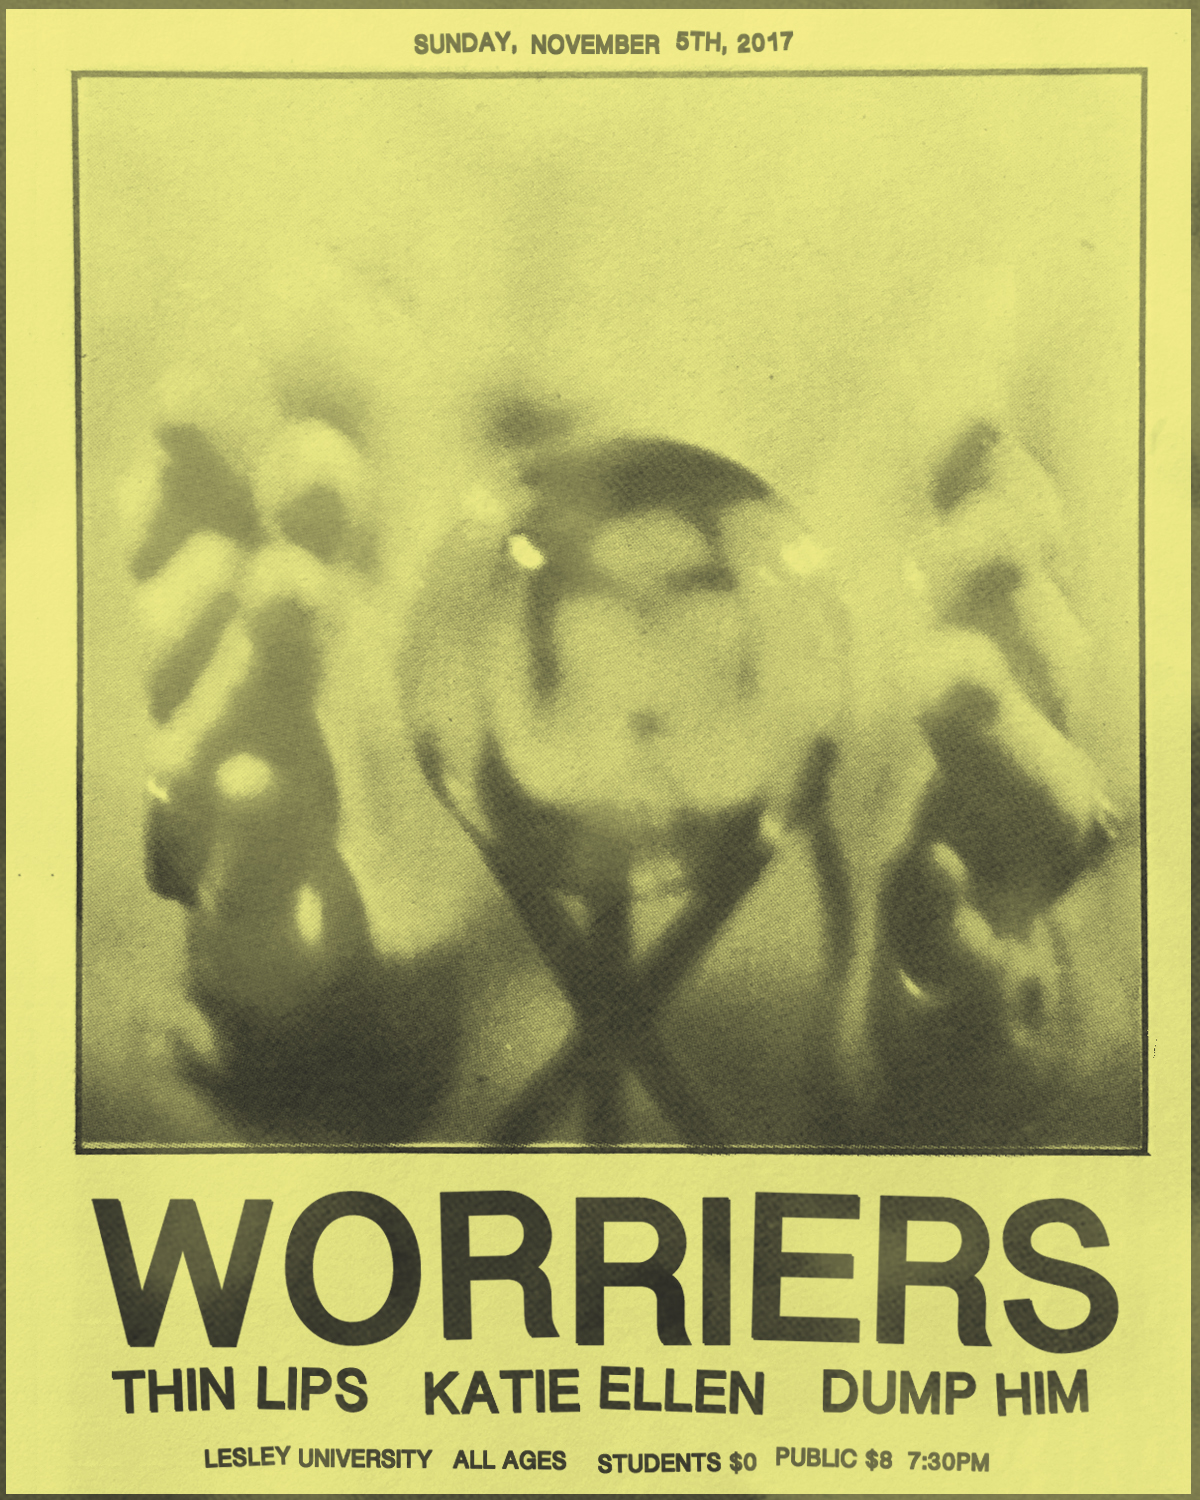 Flyer-Worriers115-Yellow copy.jpg